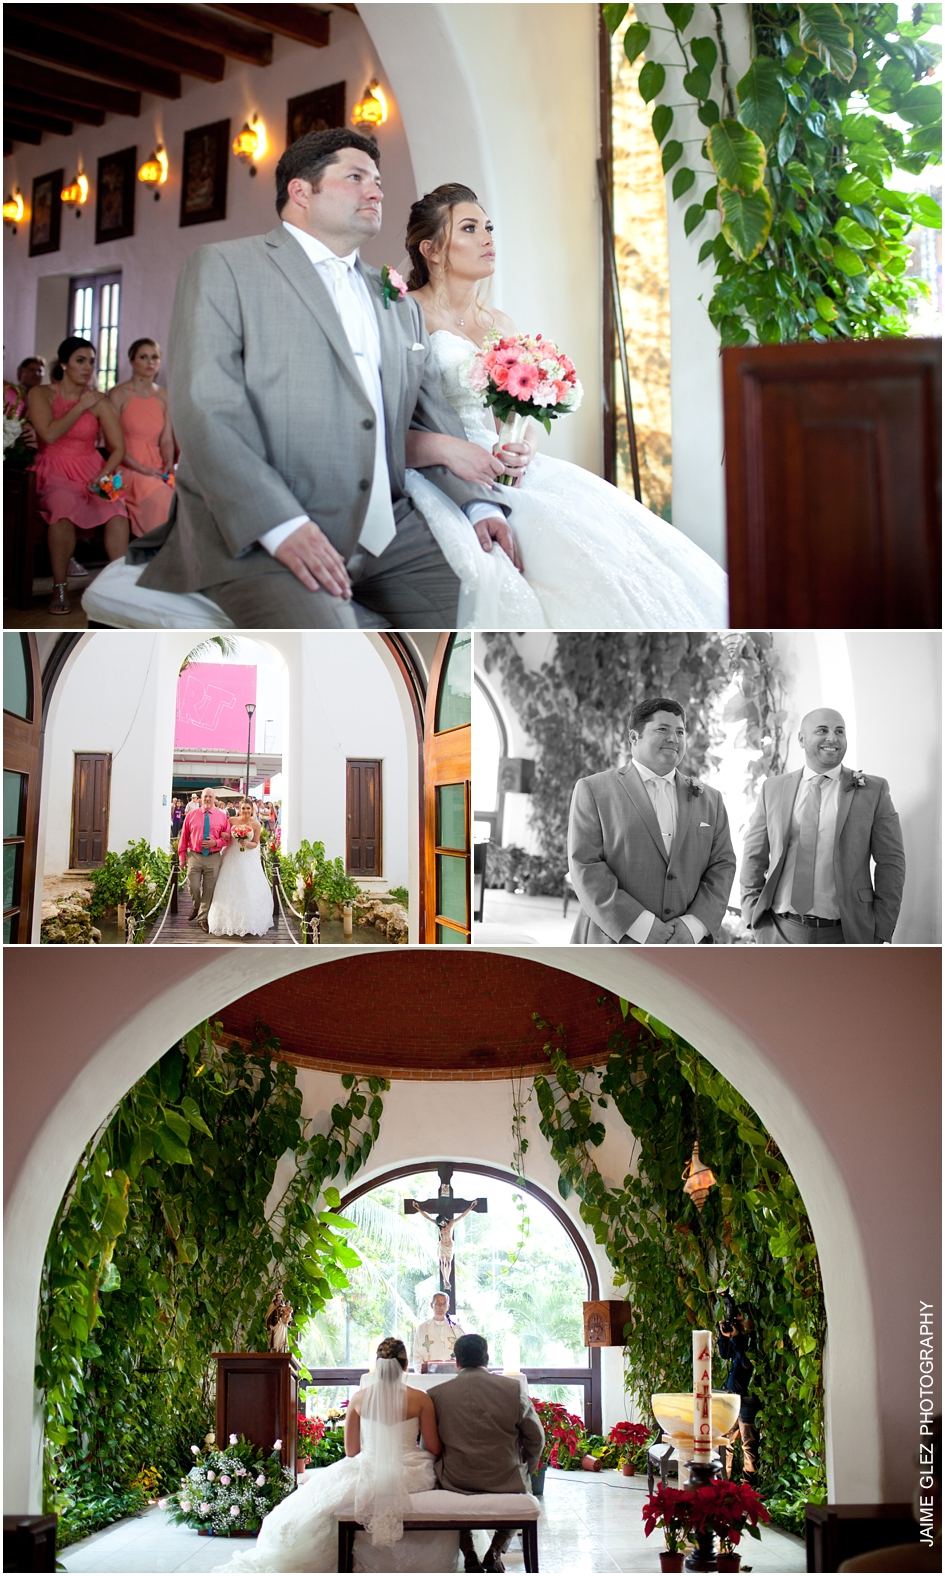 Intimate wedding ceremony at Nuestra Señora del Carmen.